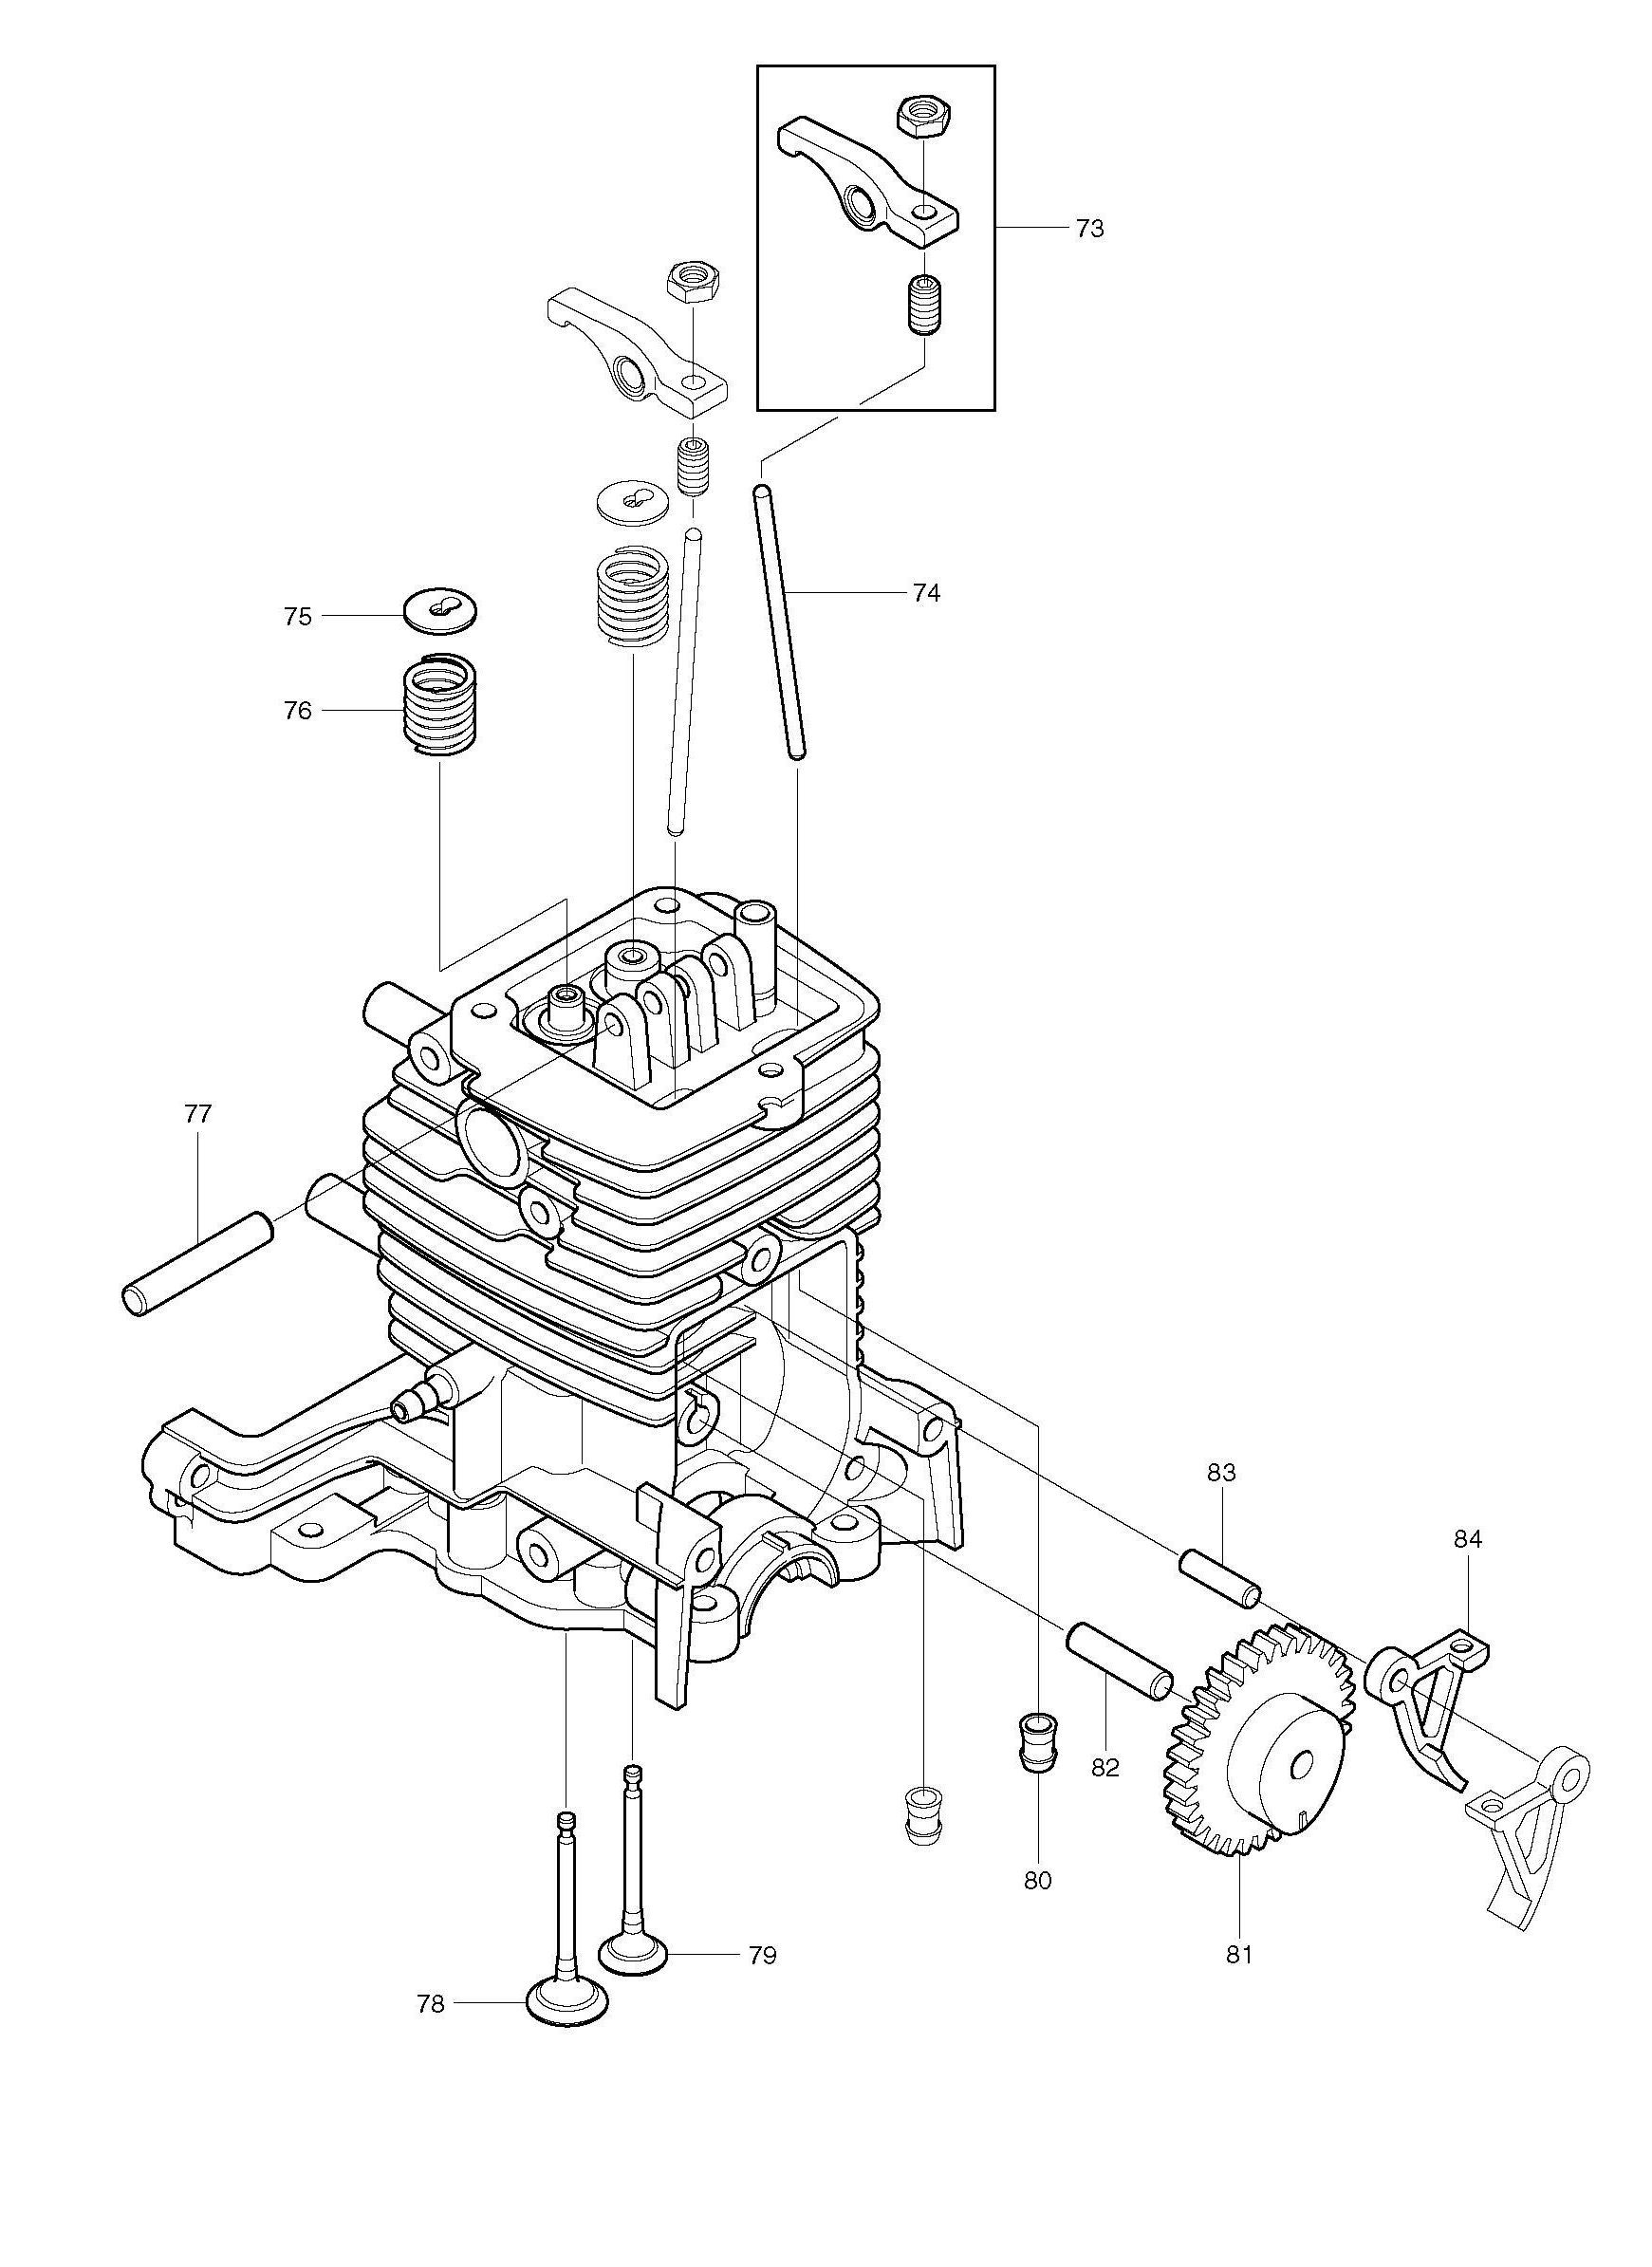 4 Stroke Petrol Engine Diagram